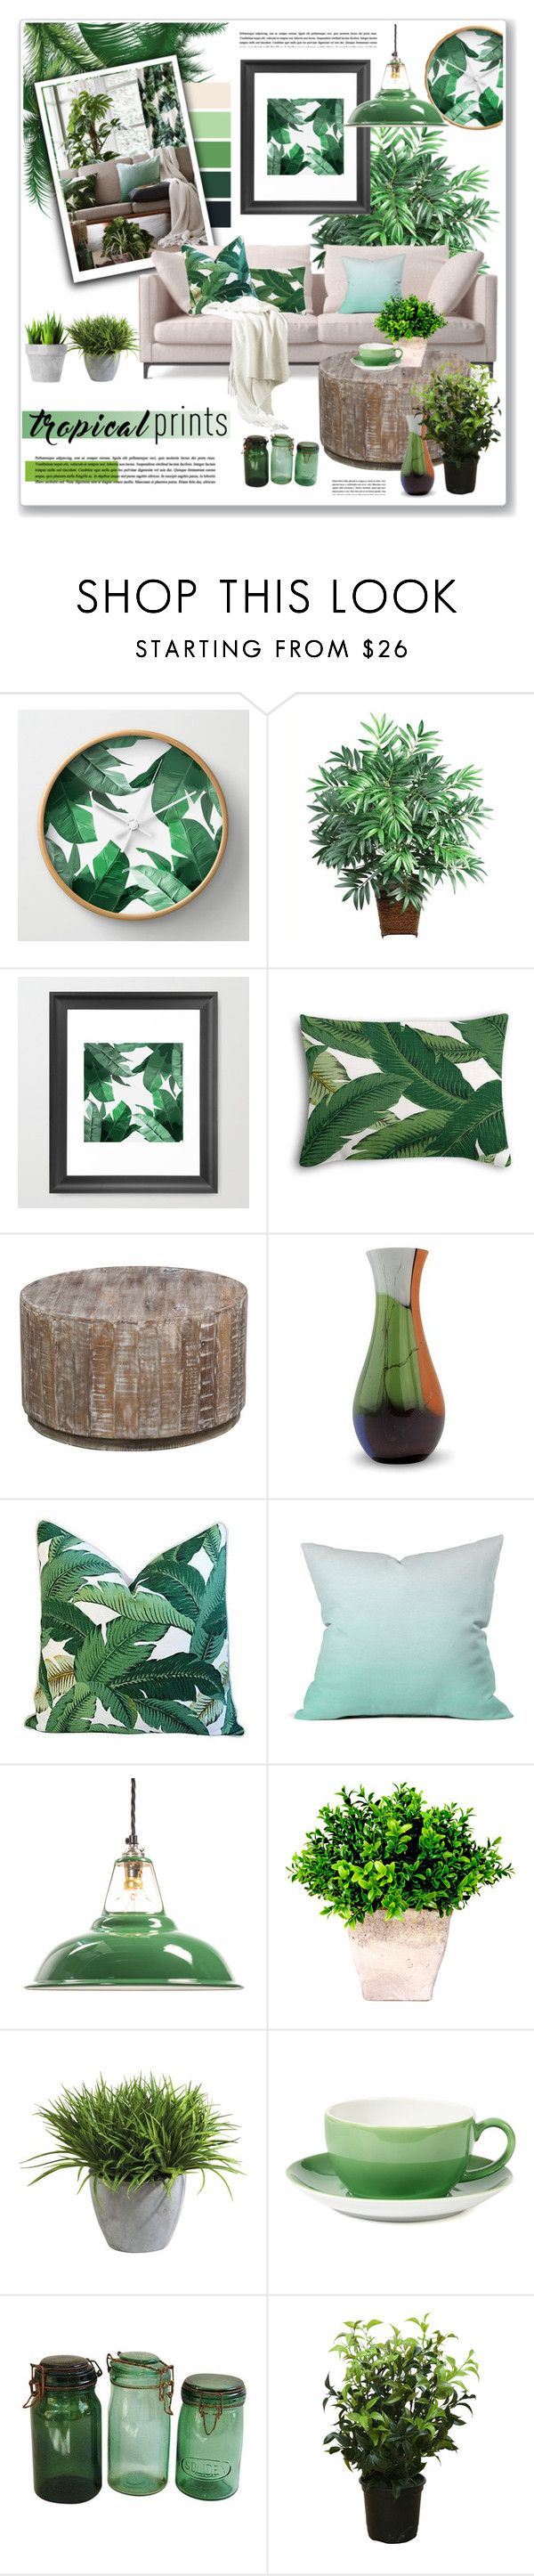 best 25+ tropical decor ideas on pinterest | tropical design